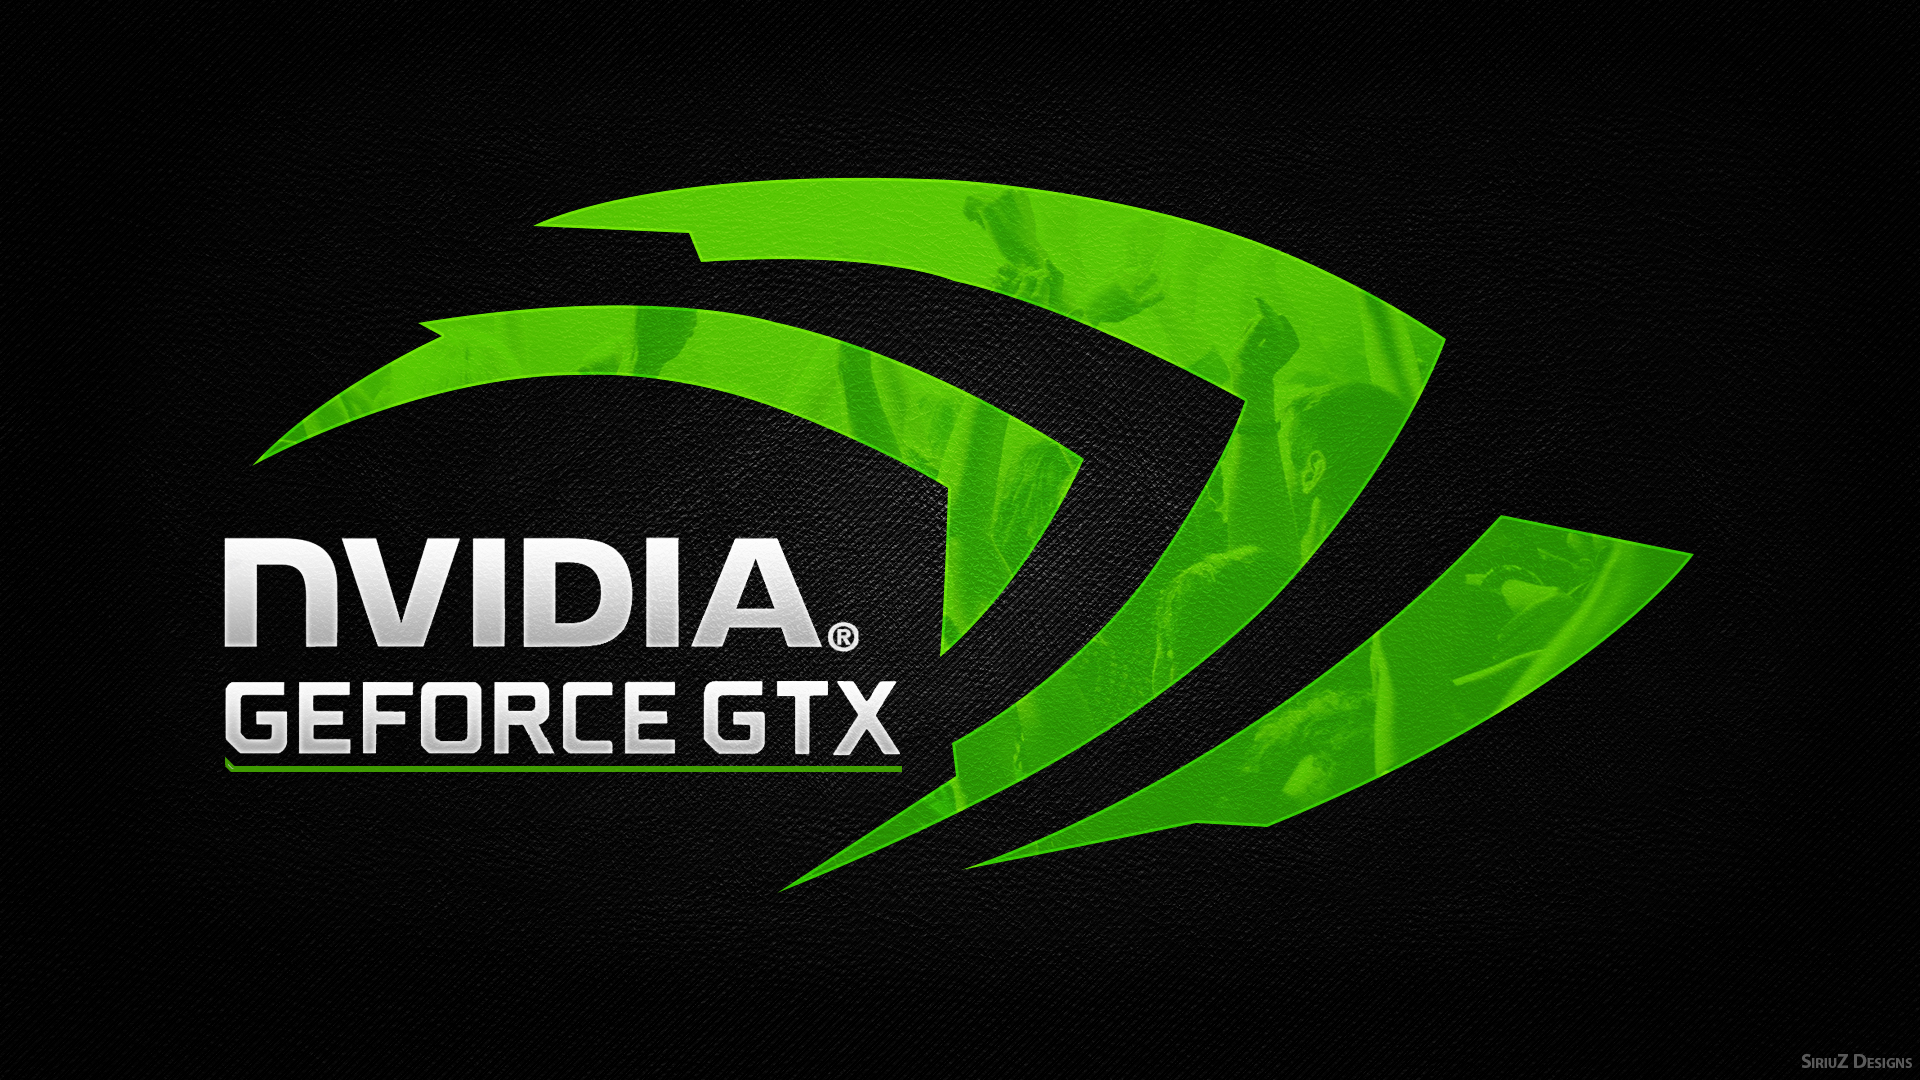 nvidia wallpaper 1080p red - photo #24